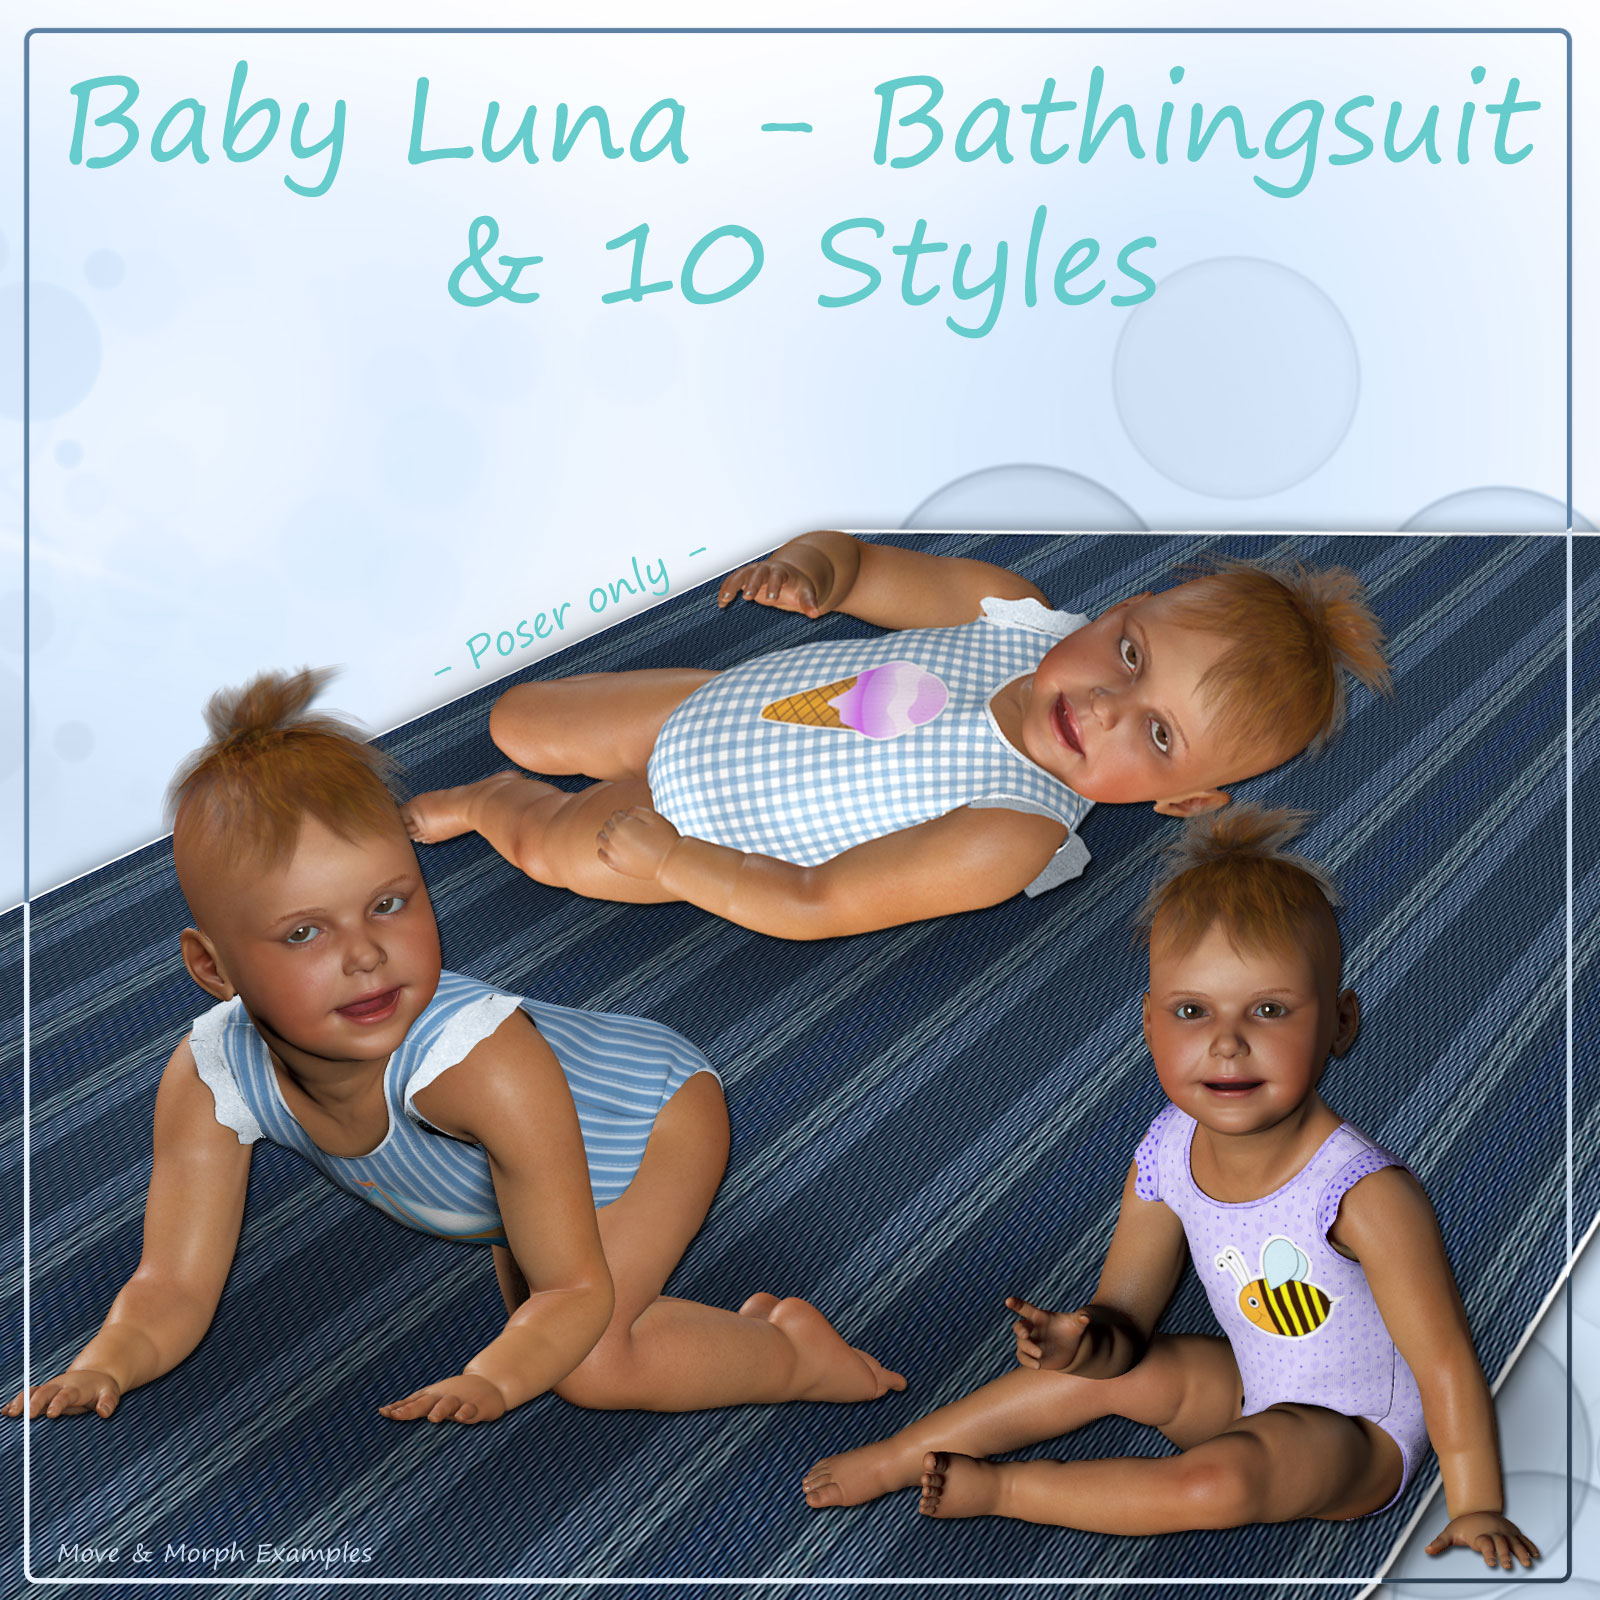 Baby Luna Bathingsuit and 10 Styles